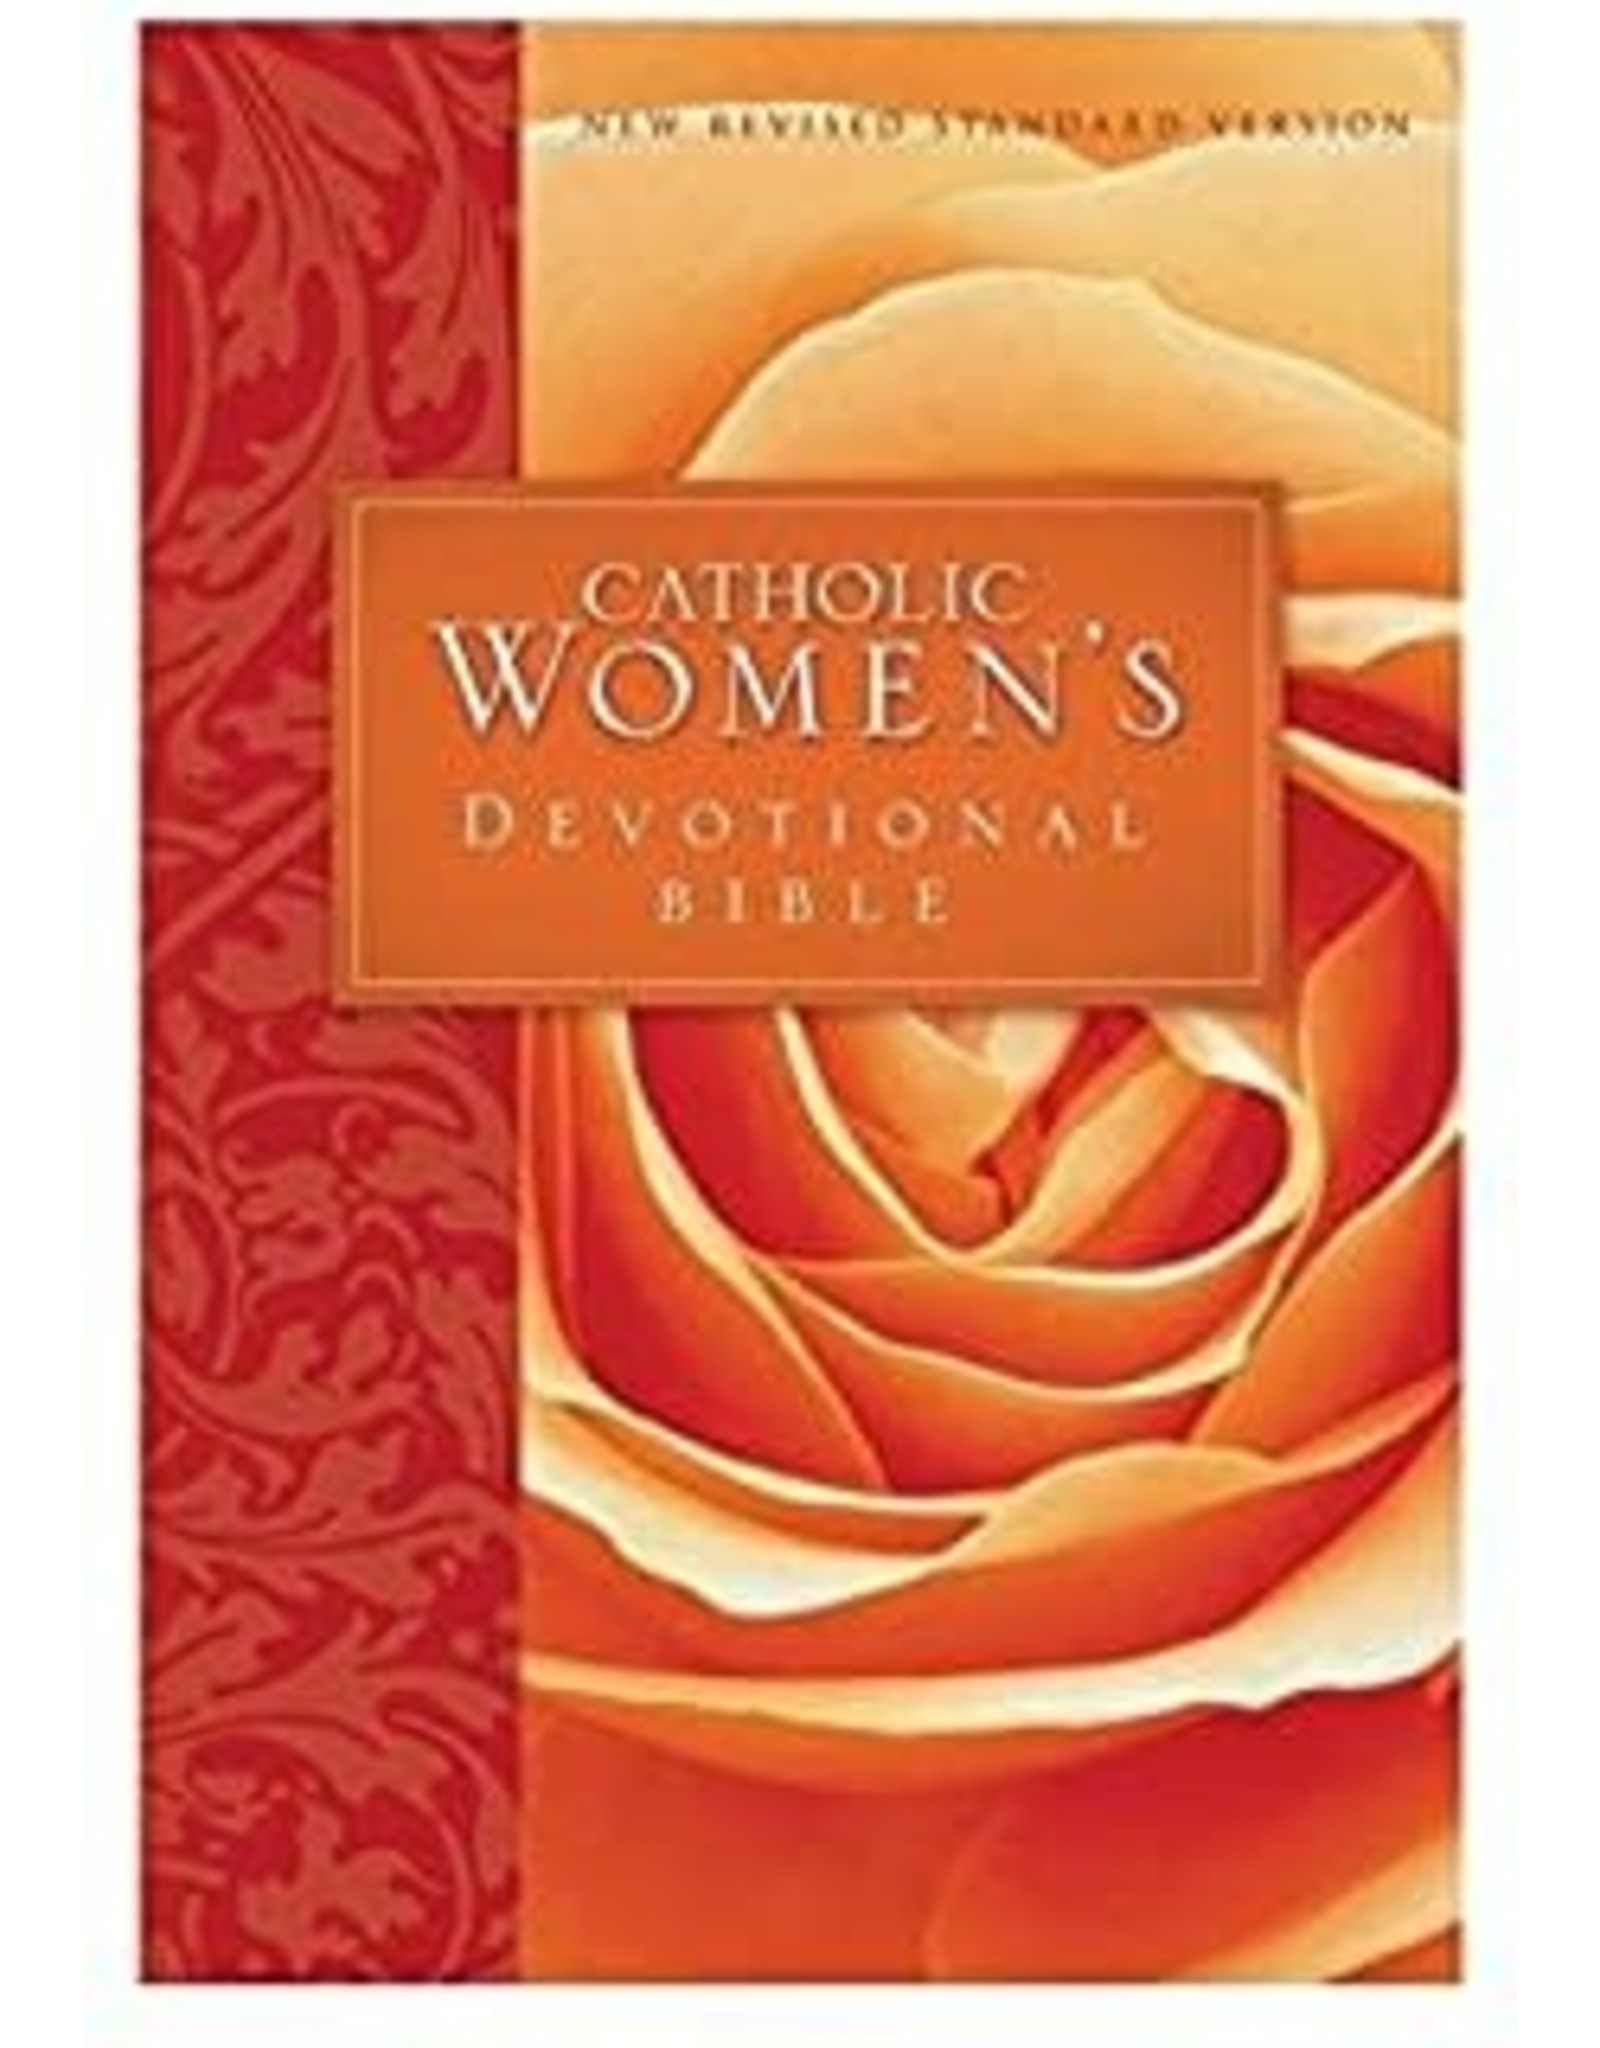 Catholic Women's Devotional Bible-NRSV